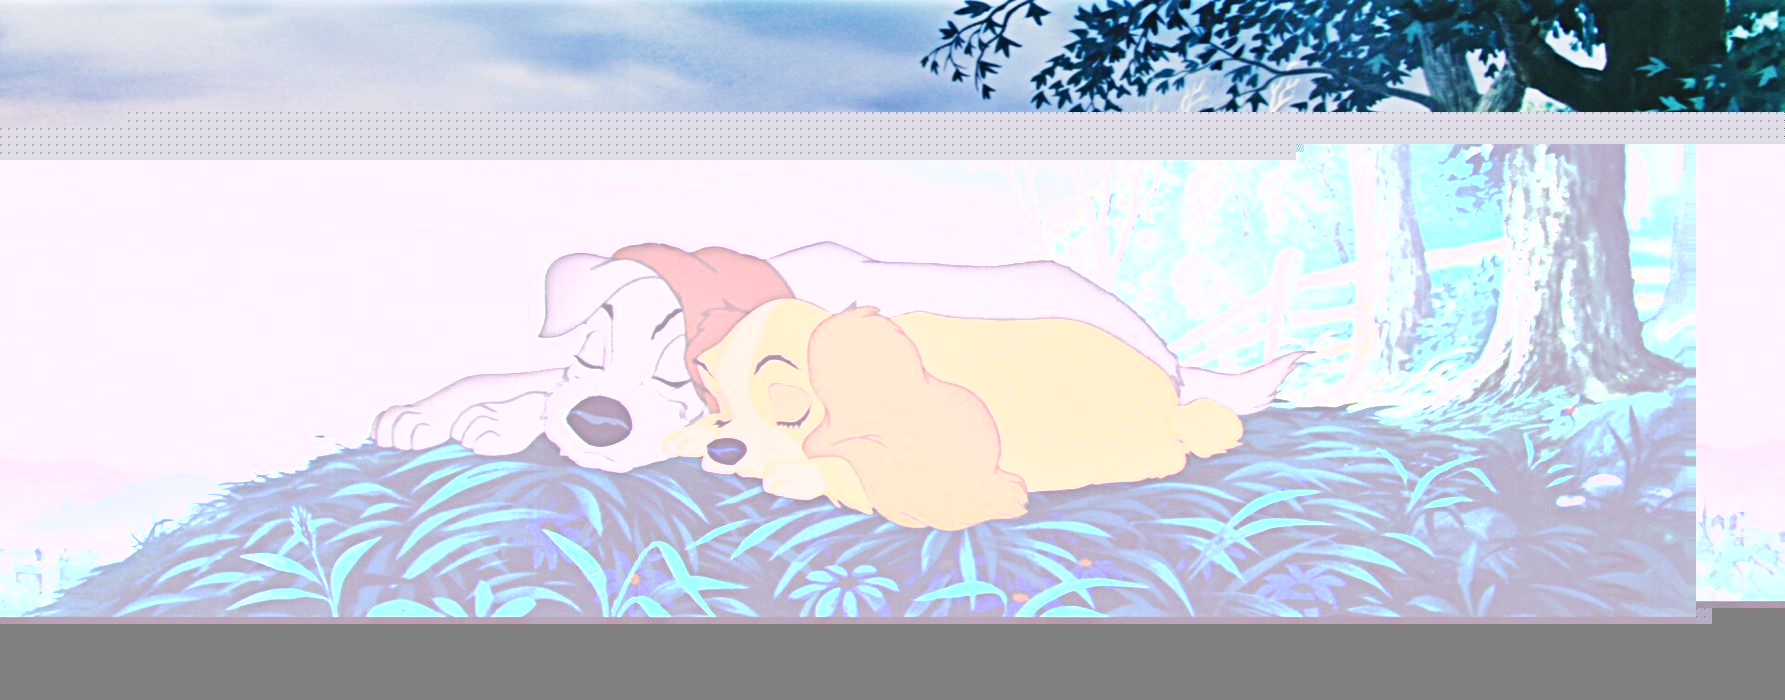 LADY AND THE TRAMP disney mood      g wallpaper